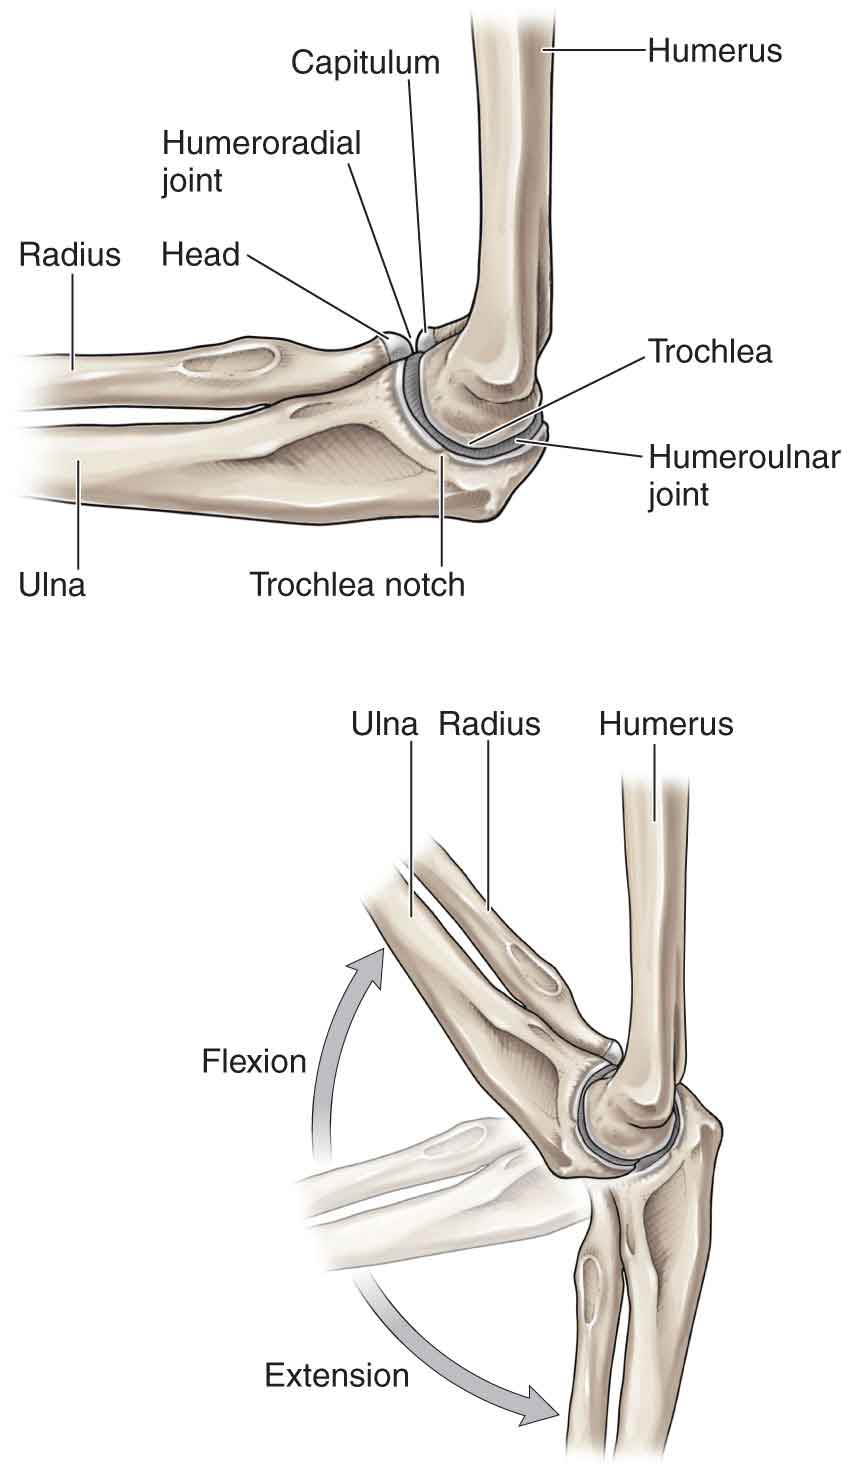 medium resolution of figure 17 1 the bony structures of the elbow complex reproduced with permission from chapter 31 arm in morton da foreman k albertine kh eds